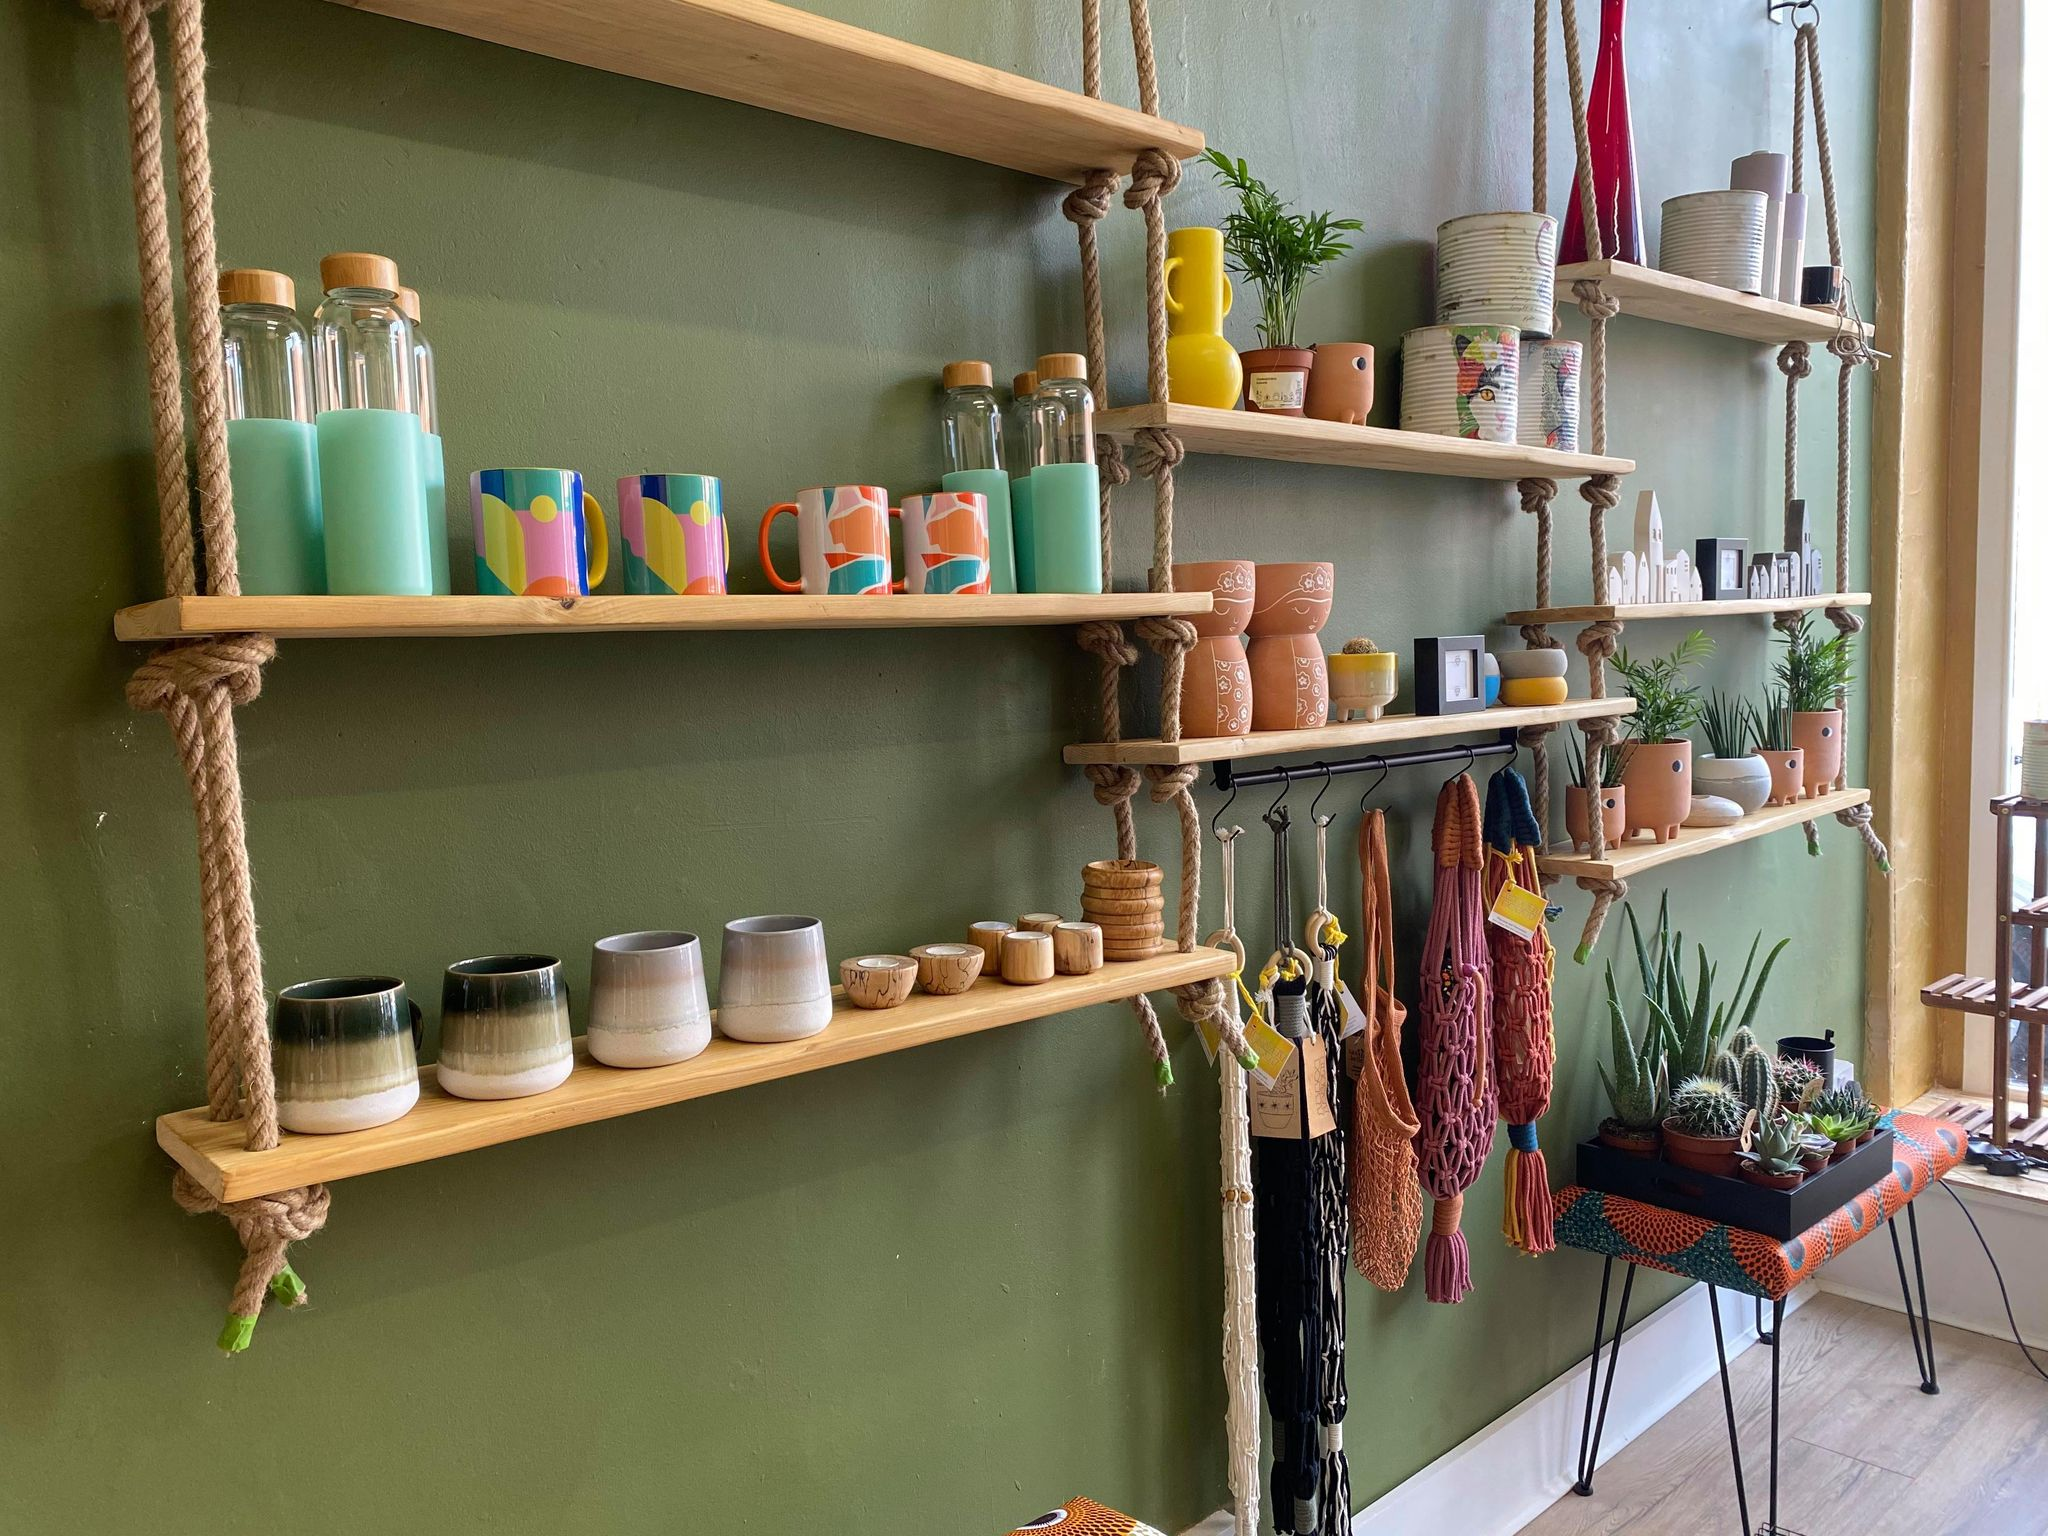 The new Urban Attic shop is opening on Market Street in Southport